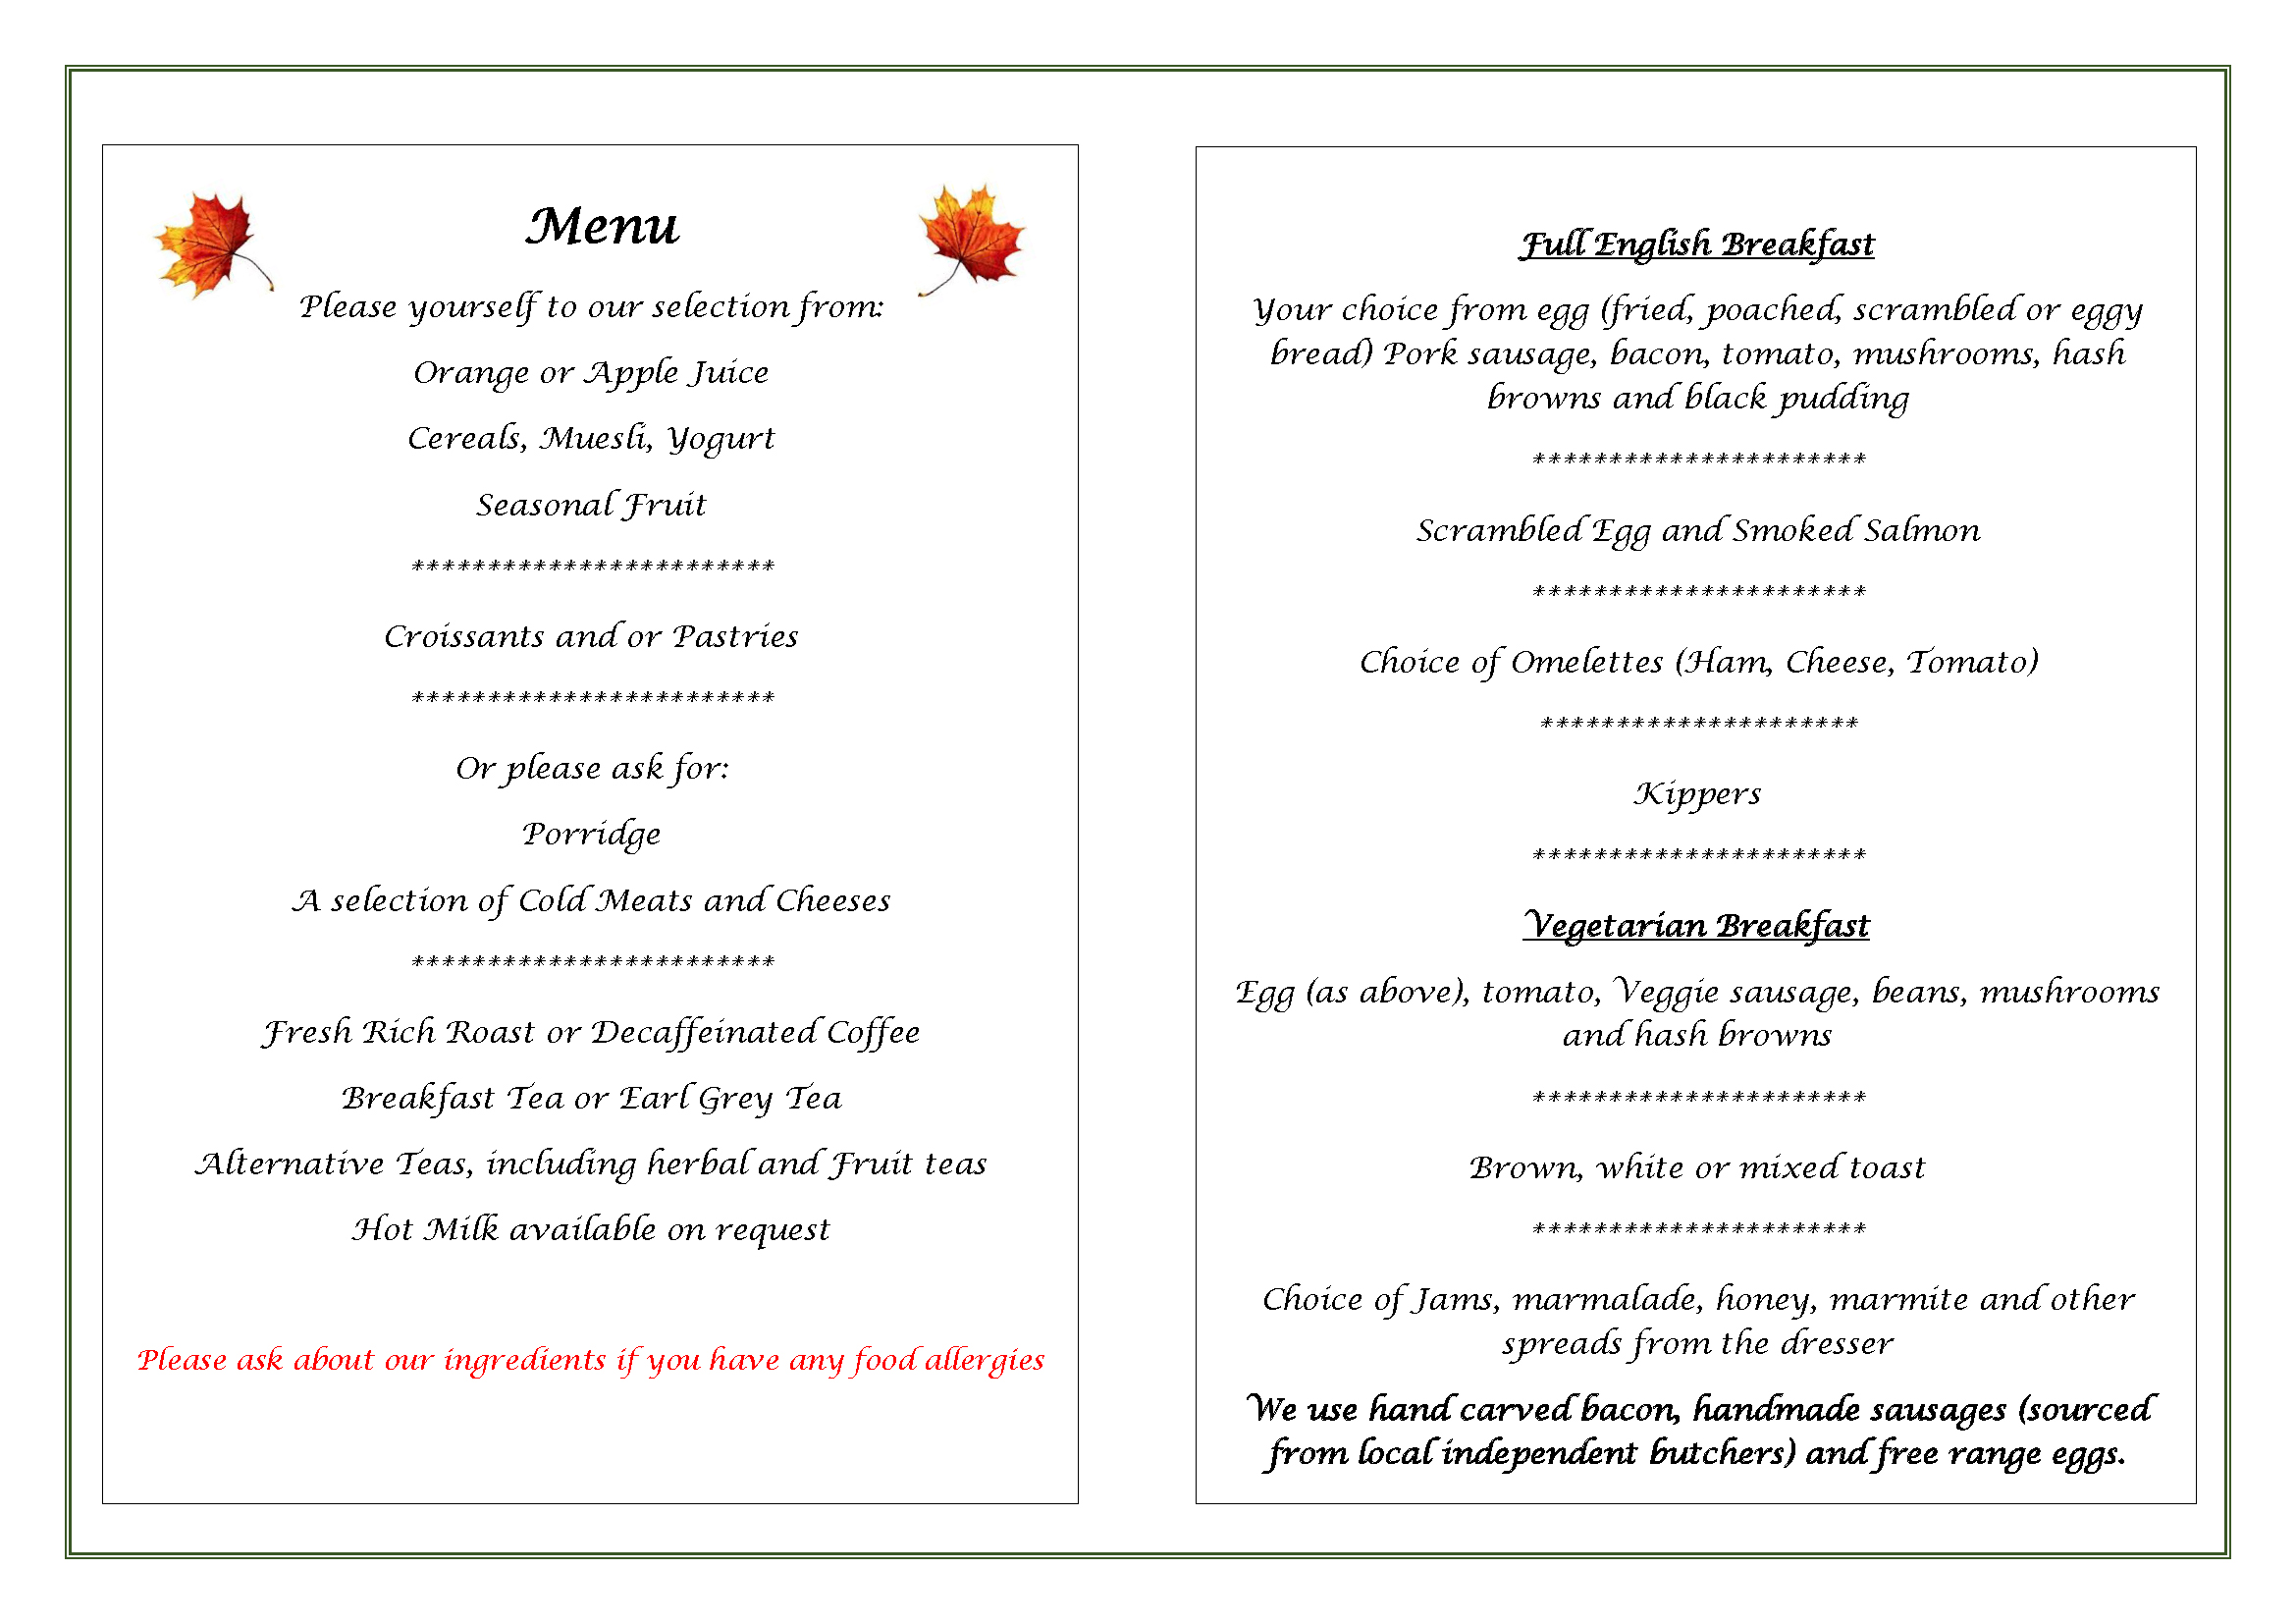 Edale House Bed and Breakfast Menu